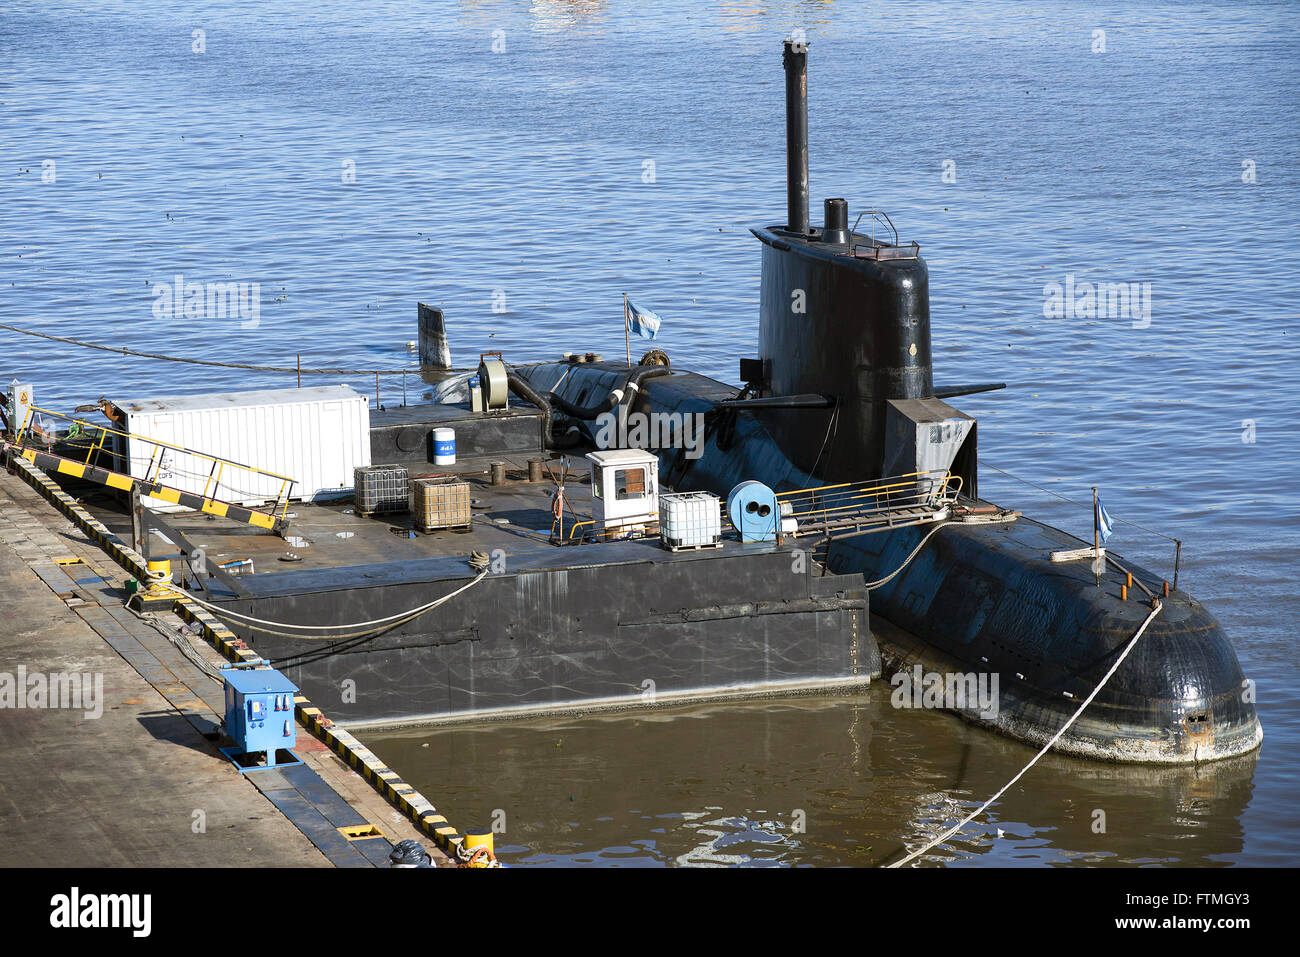 Argentine submarine docked in the shipyard for repairs Tandanor - Stock Image